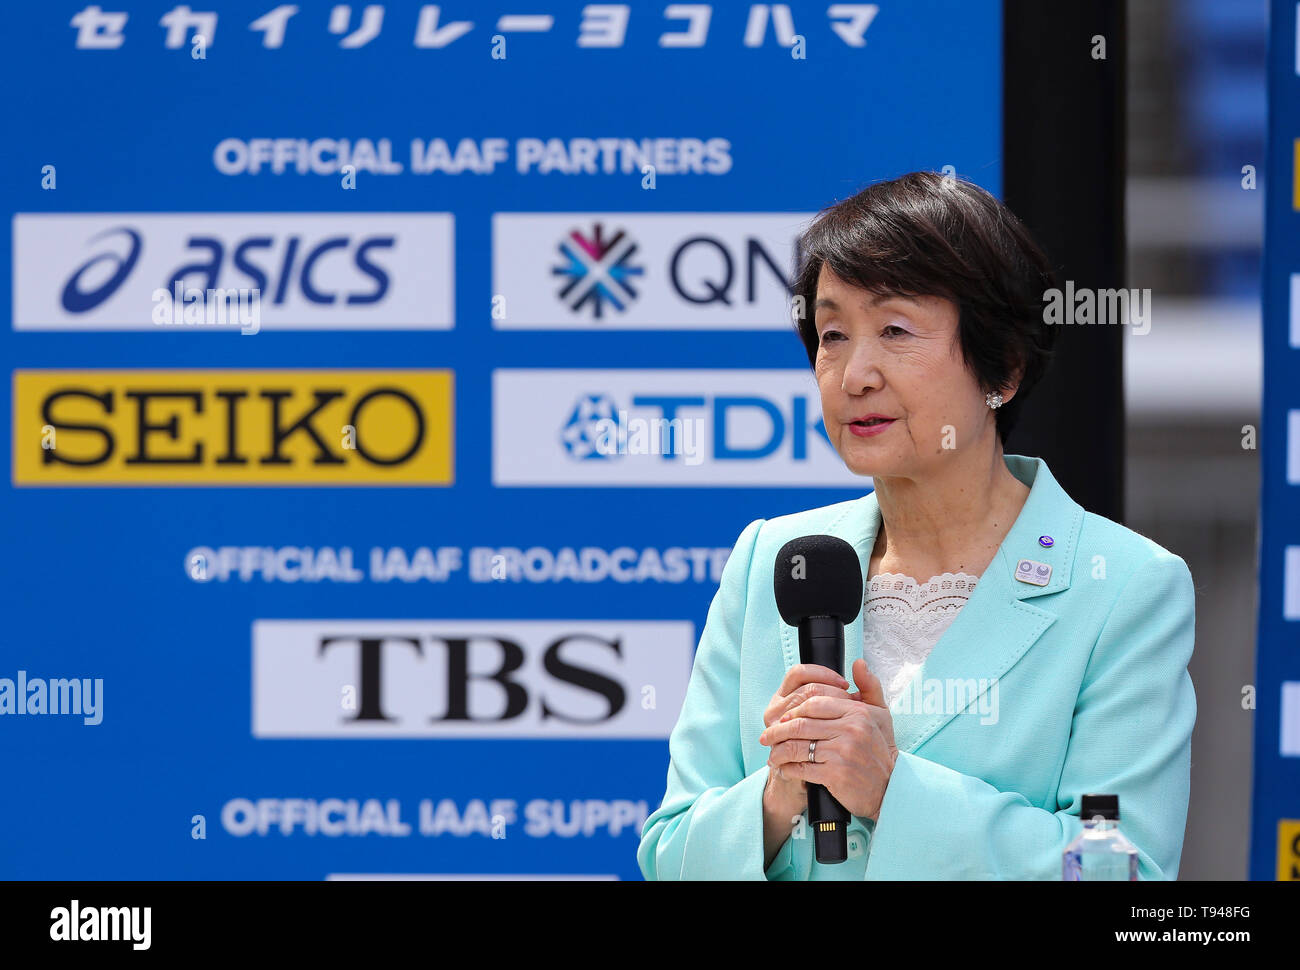 YOKOHAMA, JAPAN - MAY 10: Mayor of Yokohama, Fumiko Hayashi, during the official press conference of the 2019 IAAF World Relay Championships at the Nissan Stadium on May 10, 2019 in Yokohama, Japan. (Photo by Roger Sedres for the IAAF) - Stock Image